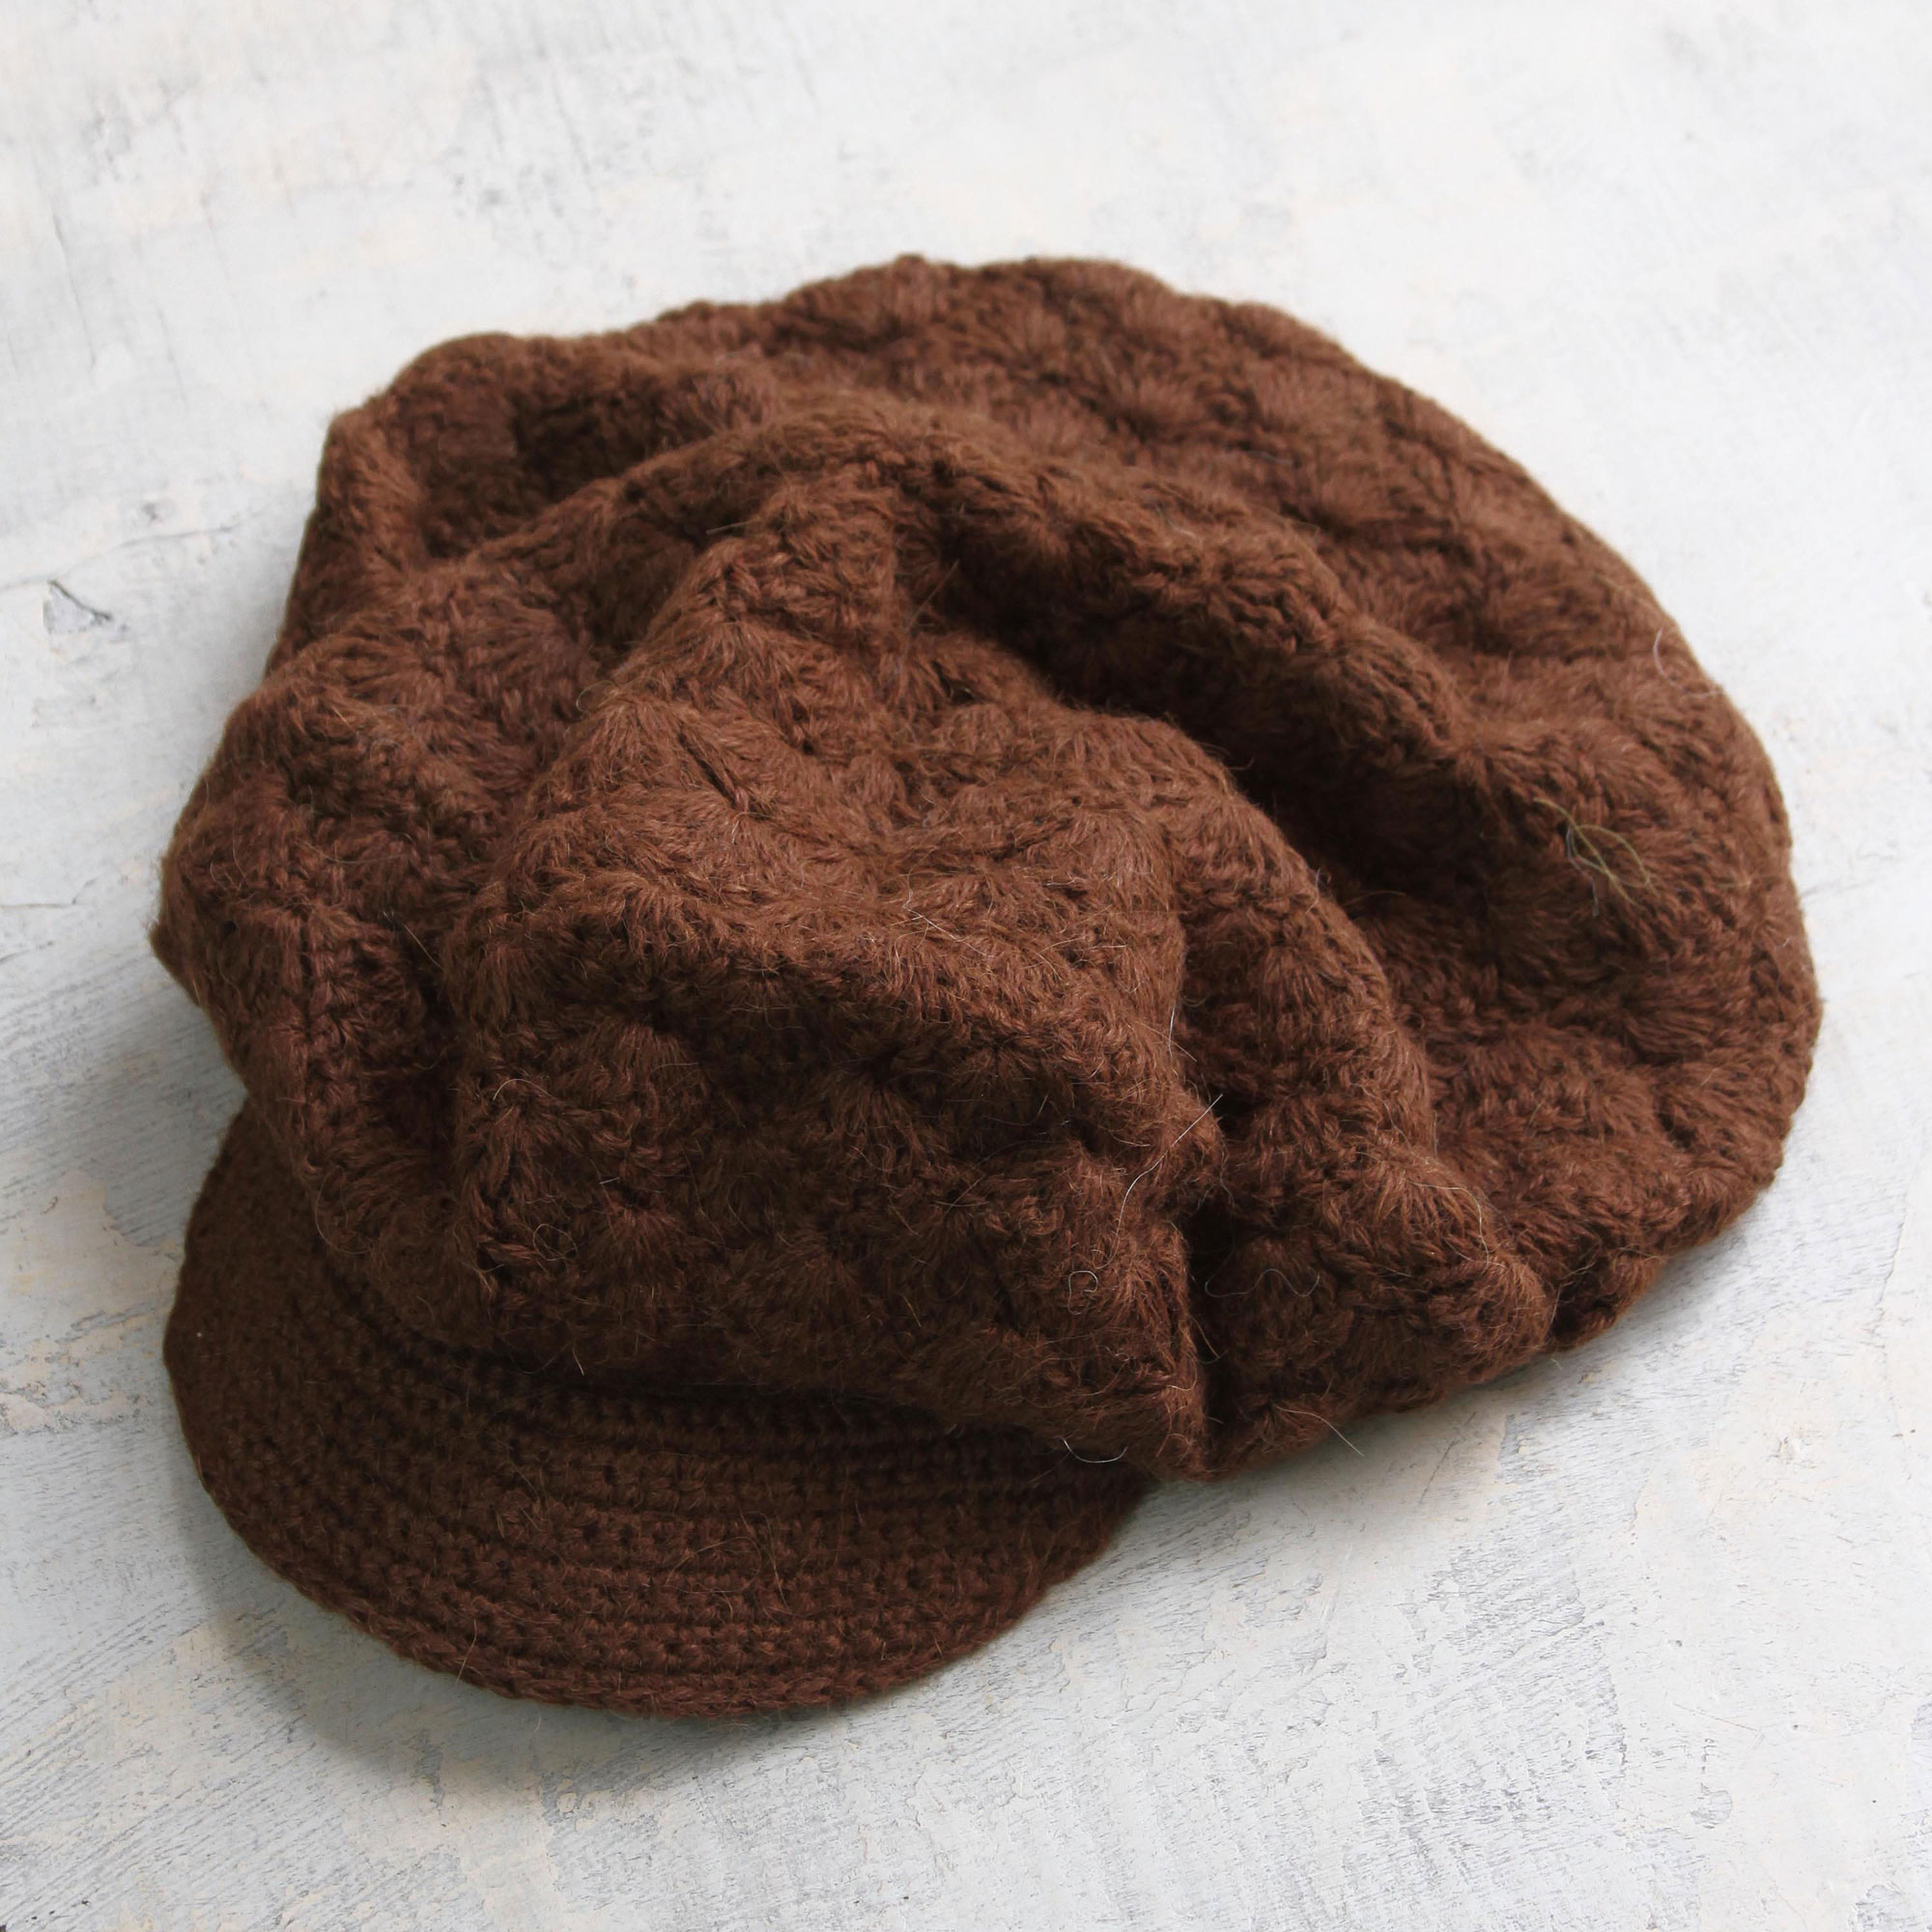 Cinnamon Cap Artisan Crafted Alpaca Wool Cap with brim handmade stay cool and keep warm Stylish & Practical Winter Accessories